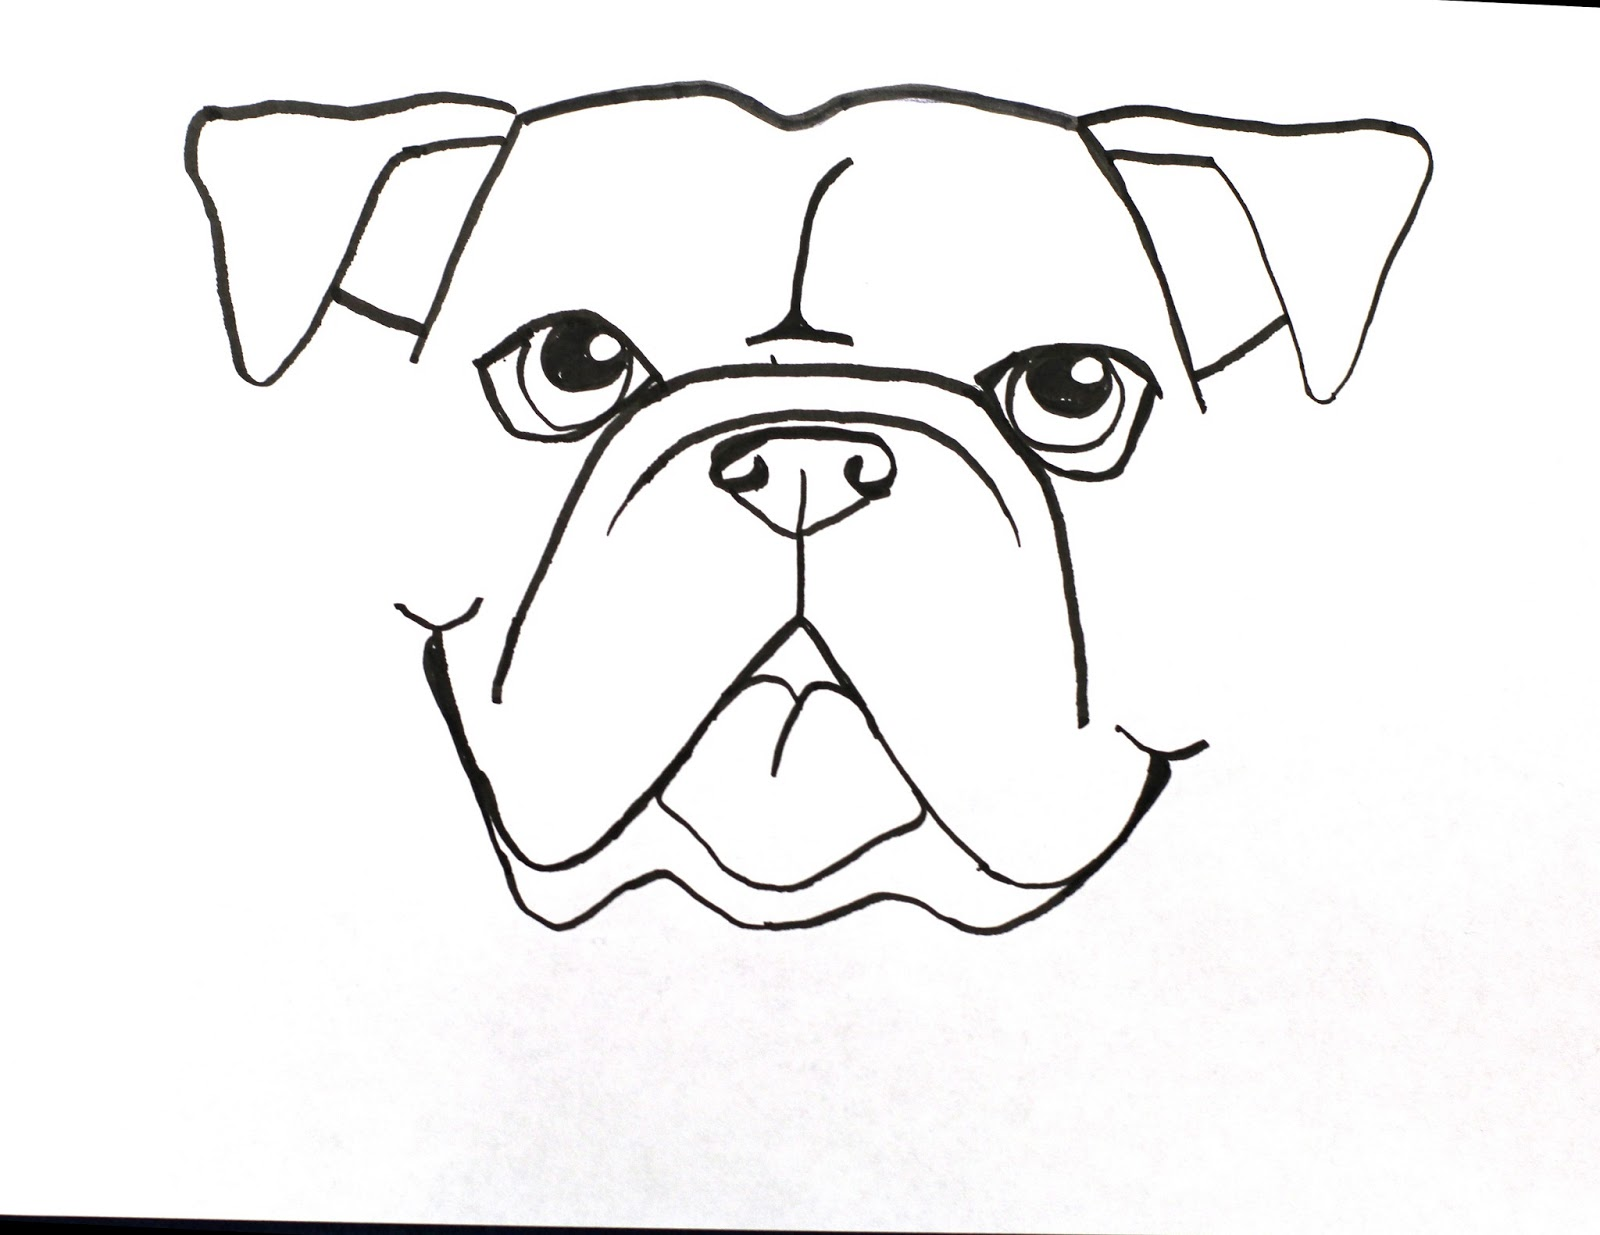 cool line drawing at getdrawings com free for personal use cool